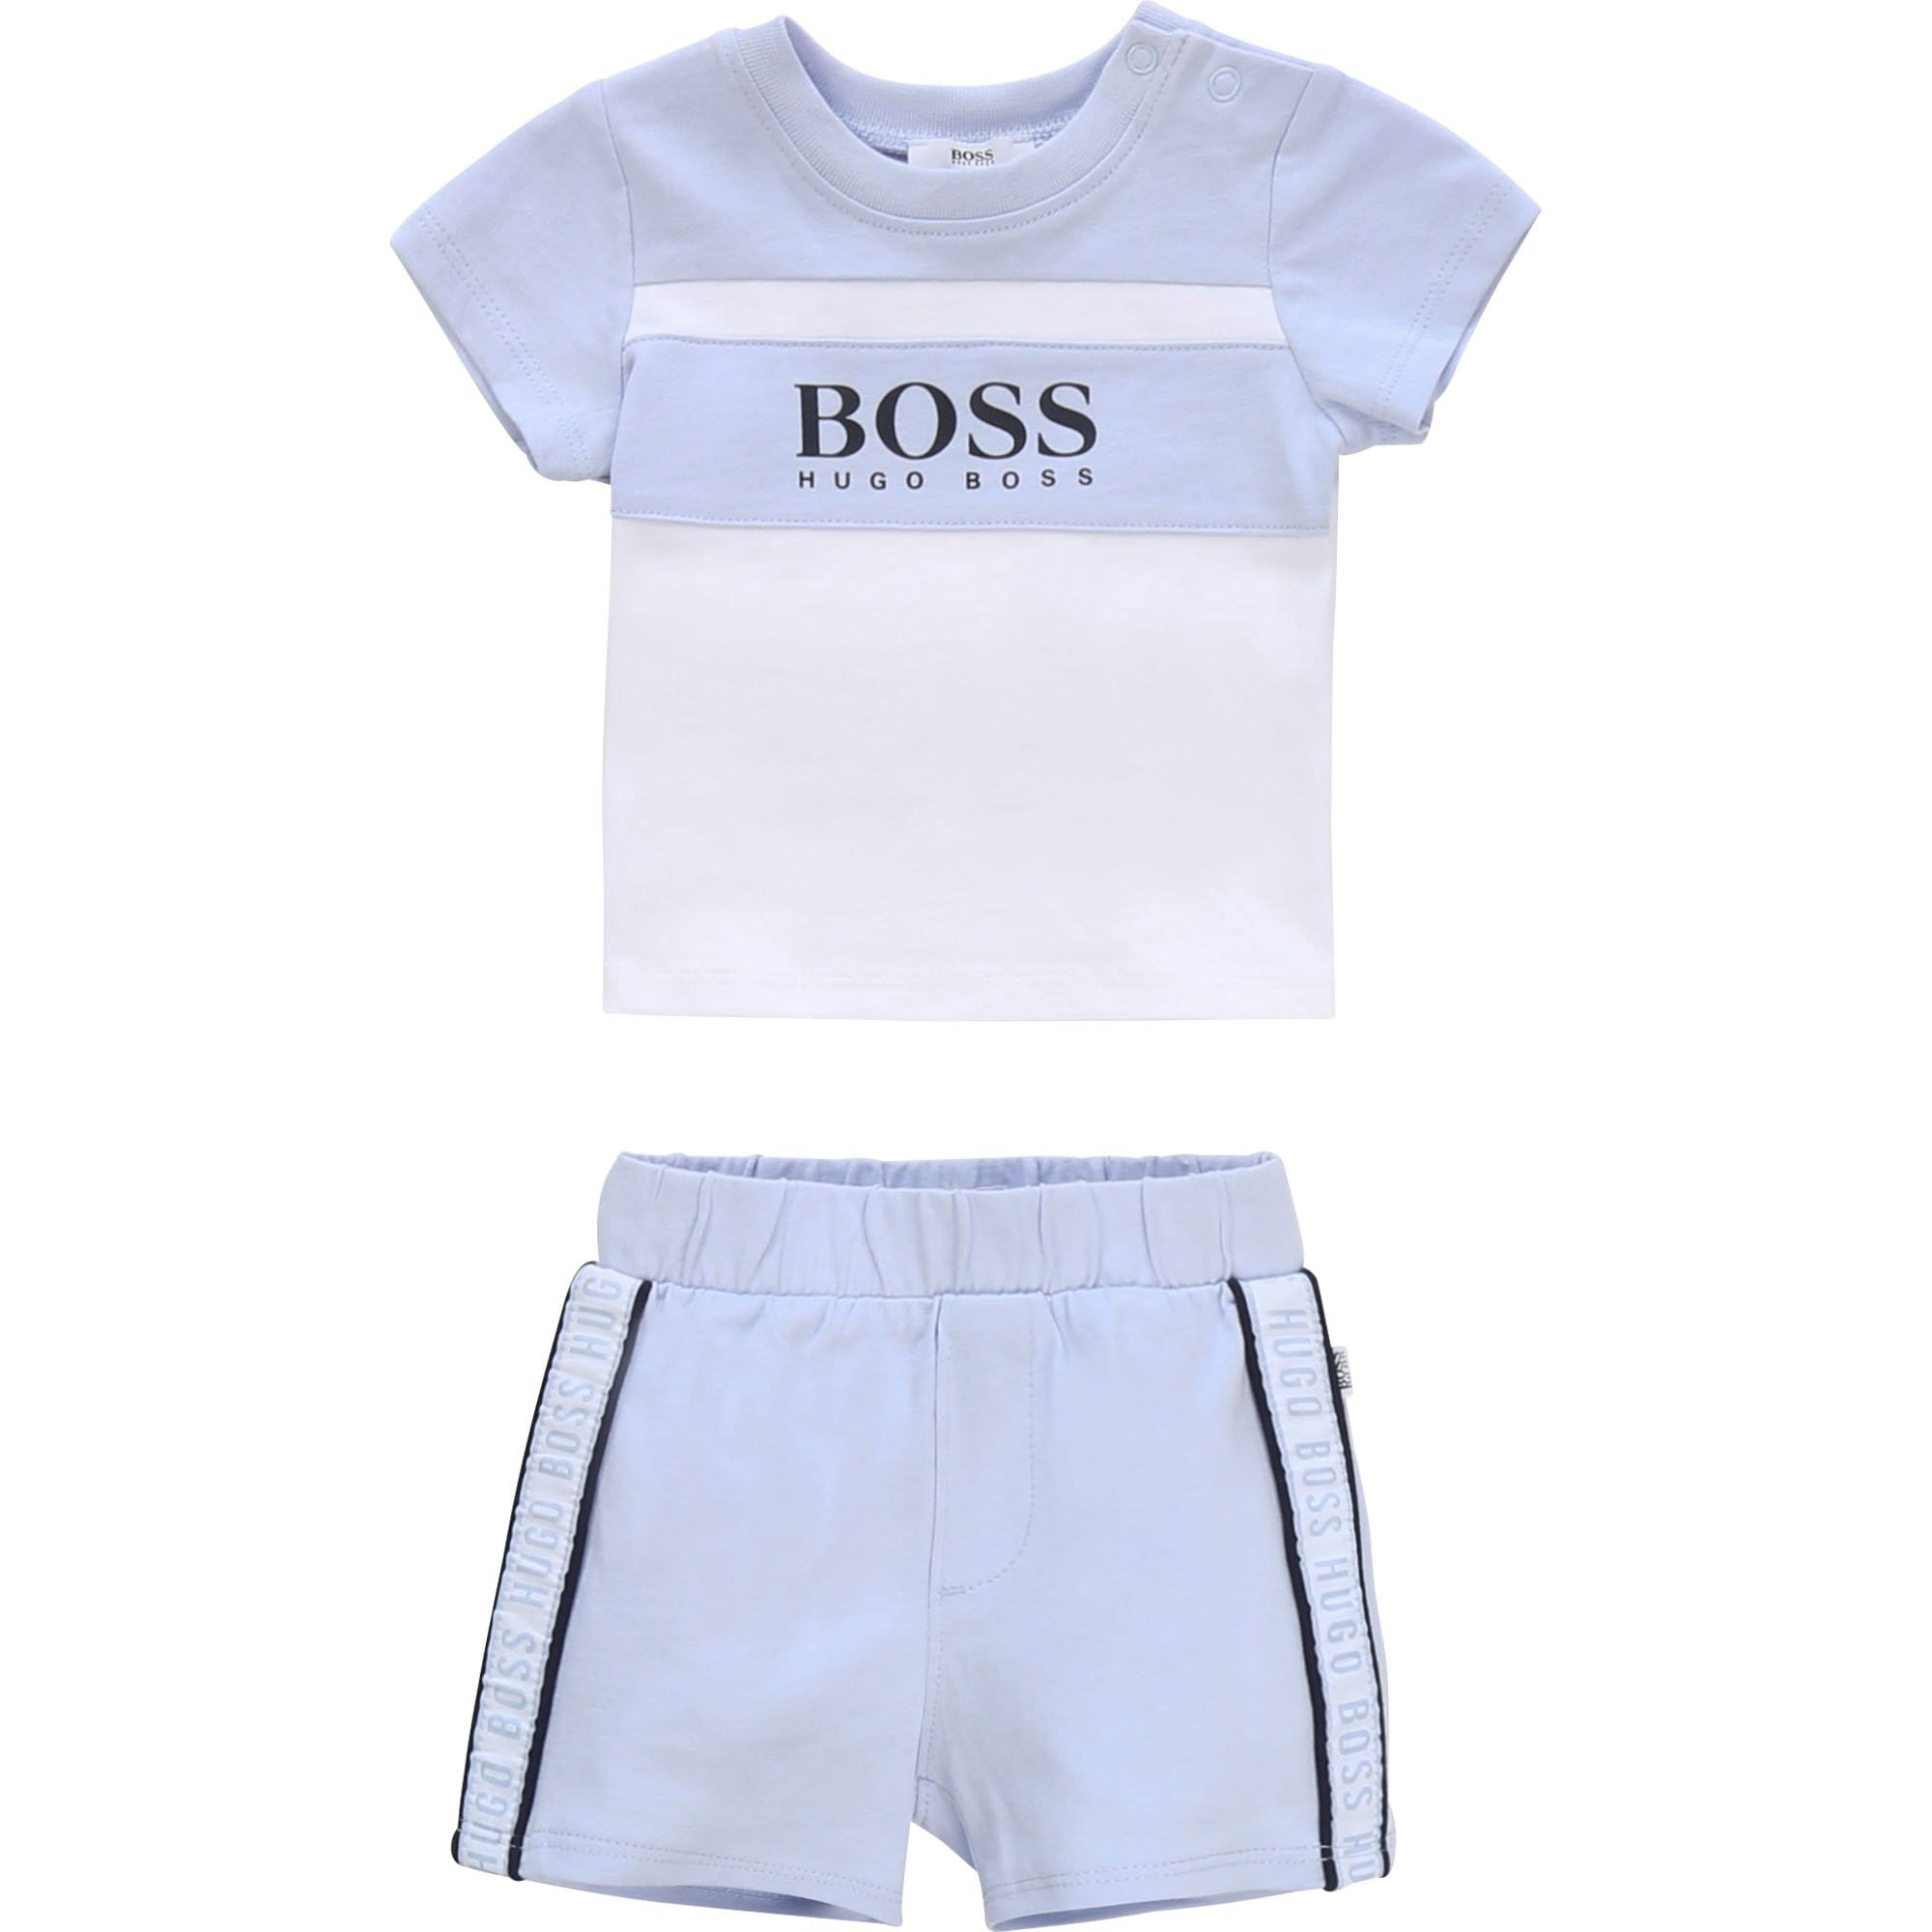 Hugo Boss T-Shirt and Shorts Set J98278/771